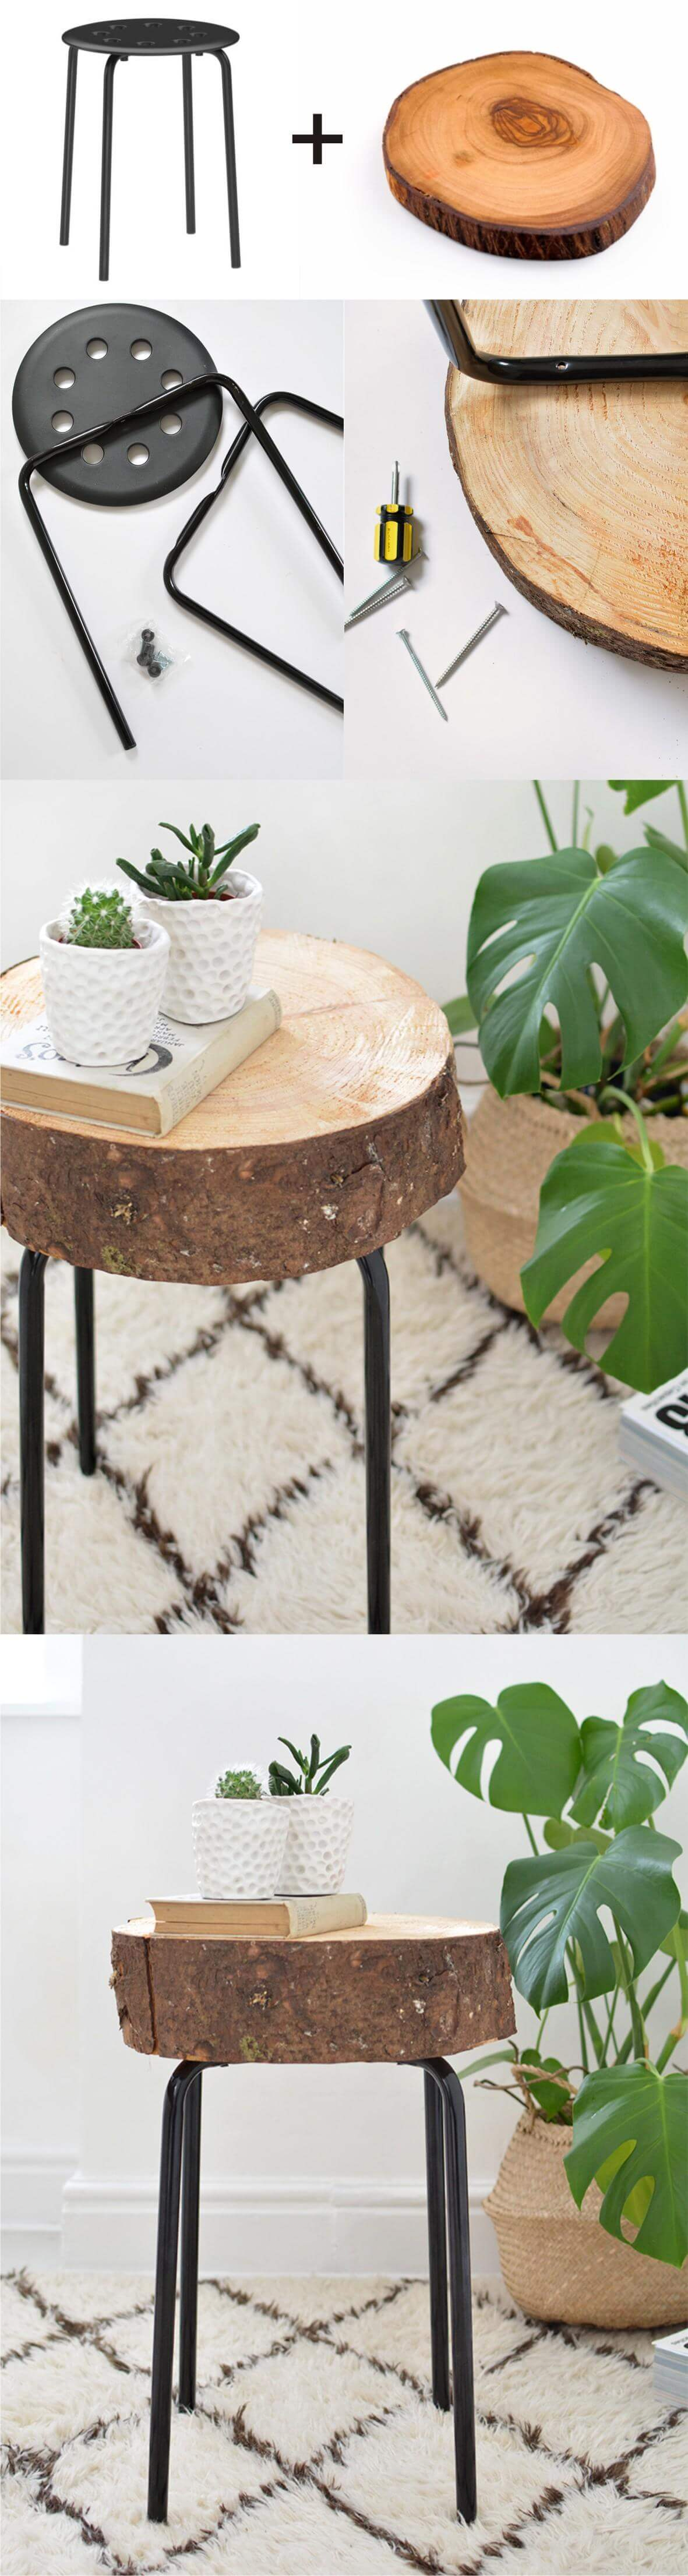 best diy side table ideas and designs for homebnc outdoor decor piece hand assembled wooden slice entryway home goods patio furniture covers round contemporary chrome lamps small